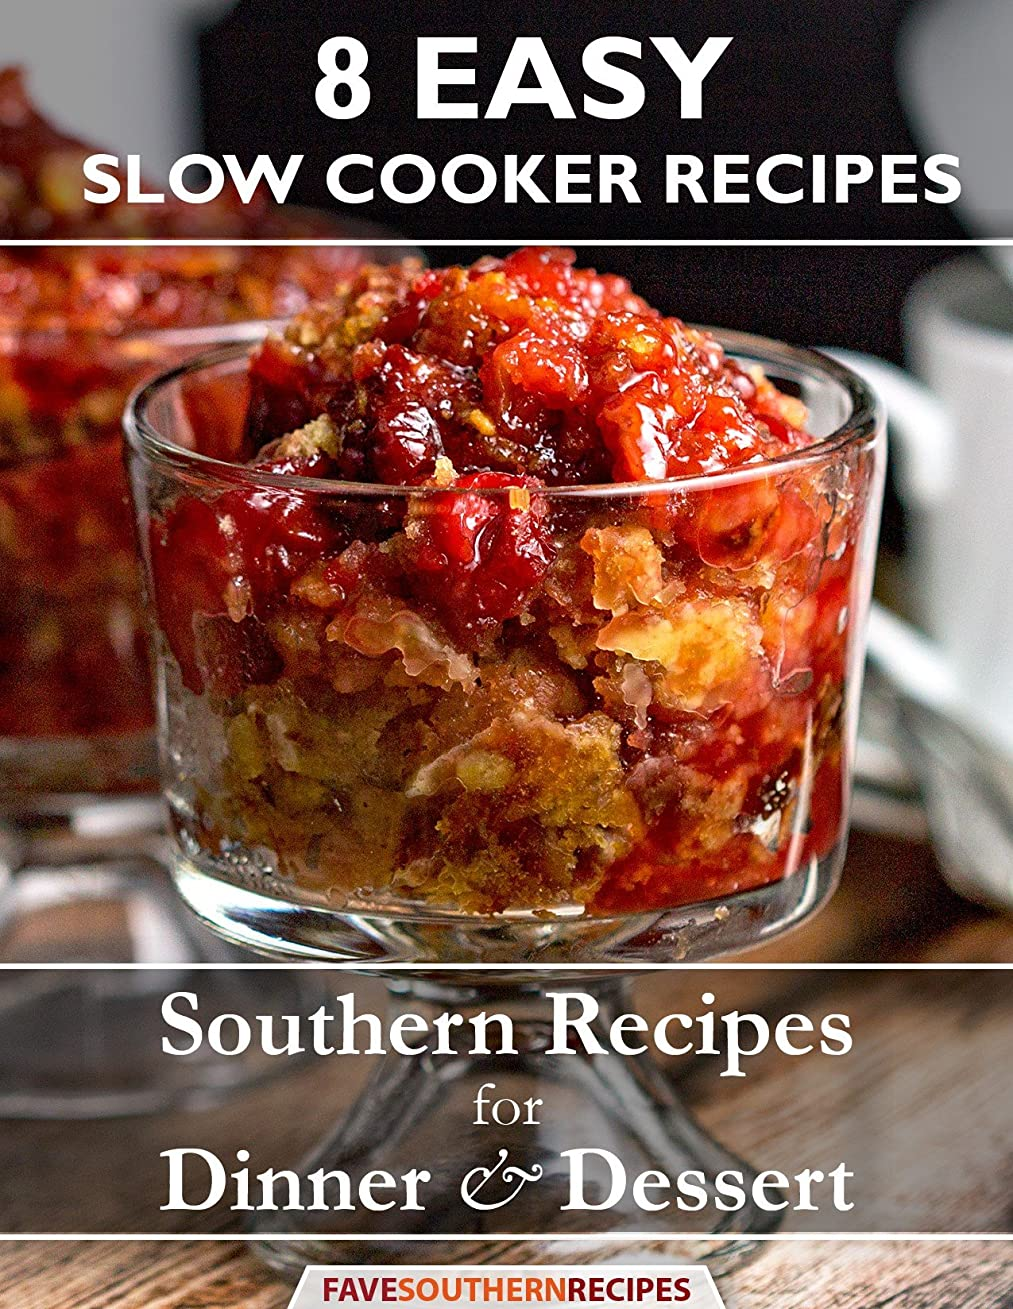 有効反対した応答8 Easy Slow Cooker Recipes: Southern Recipes for Dinner and Dessert (English Edition)